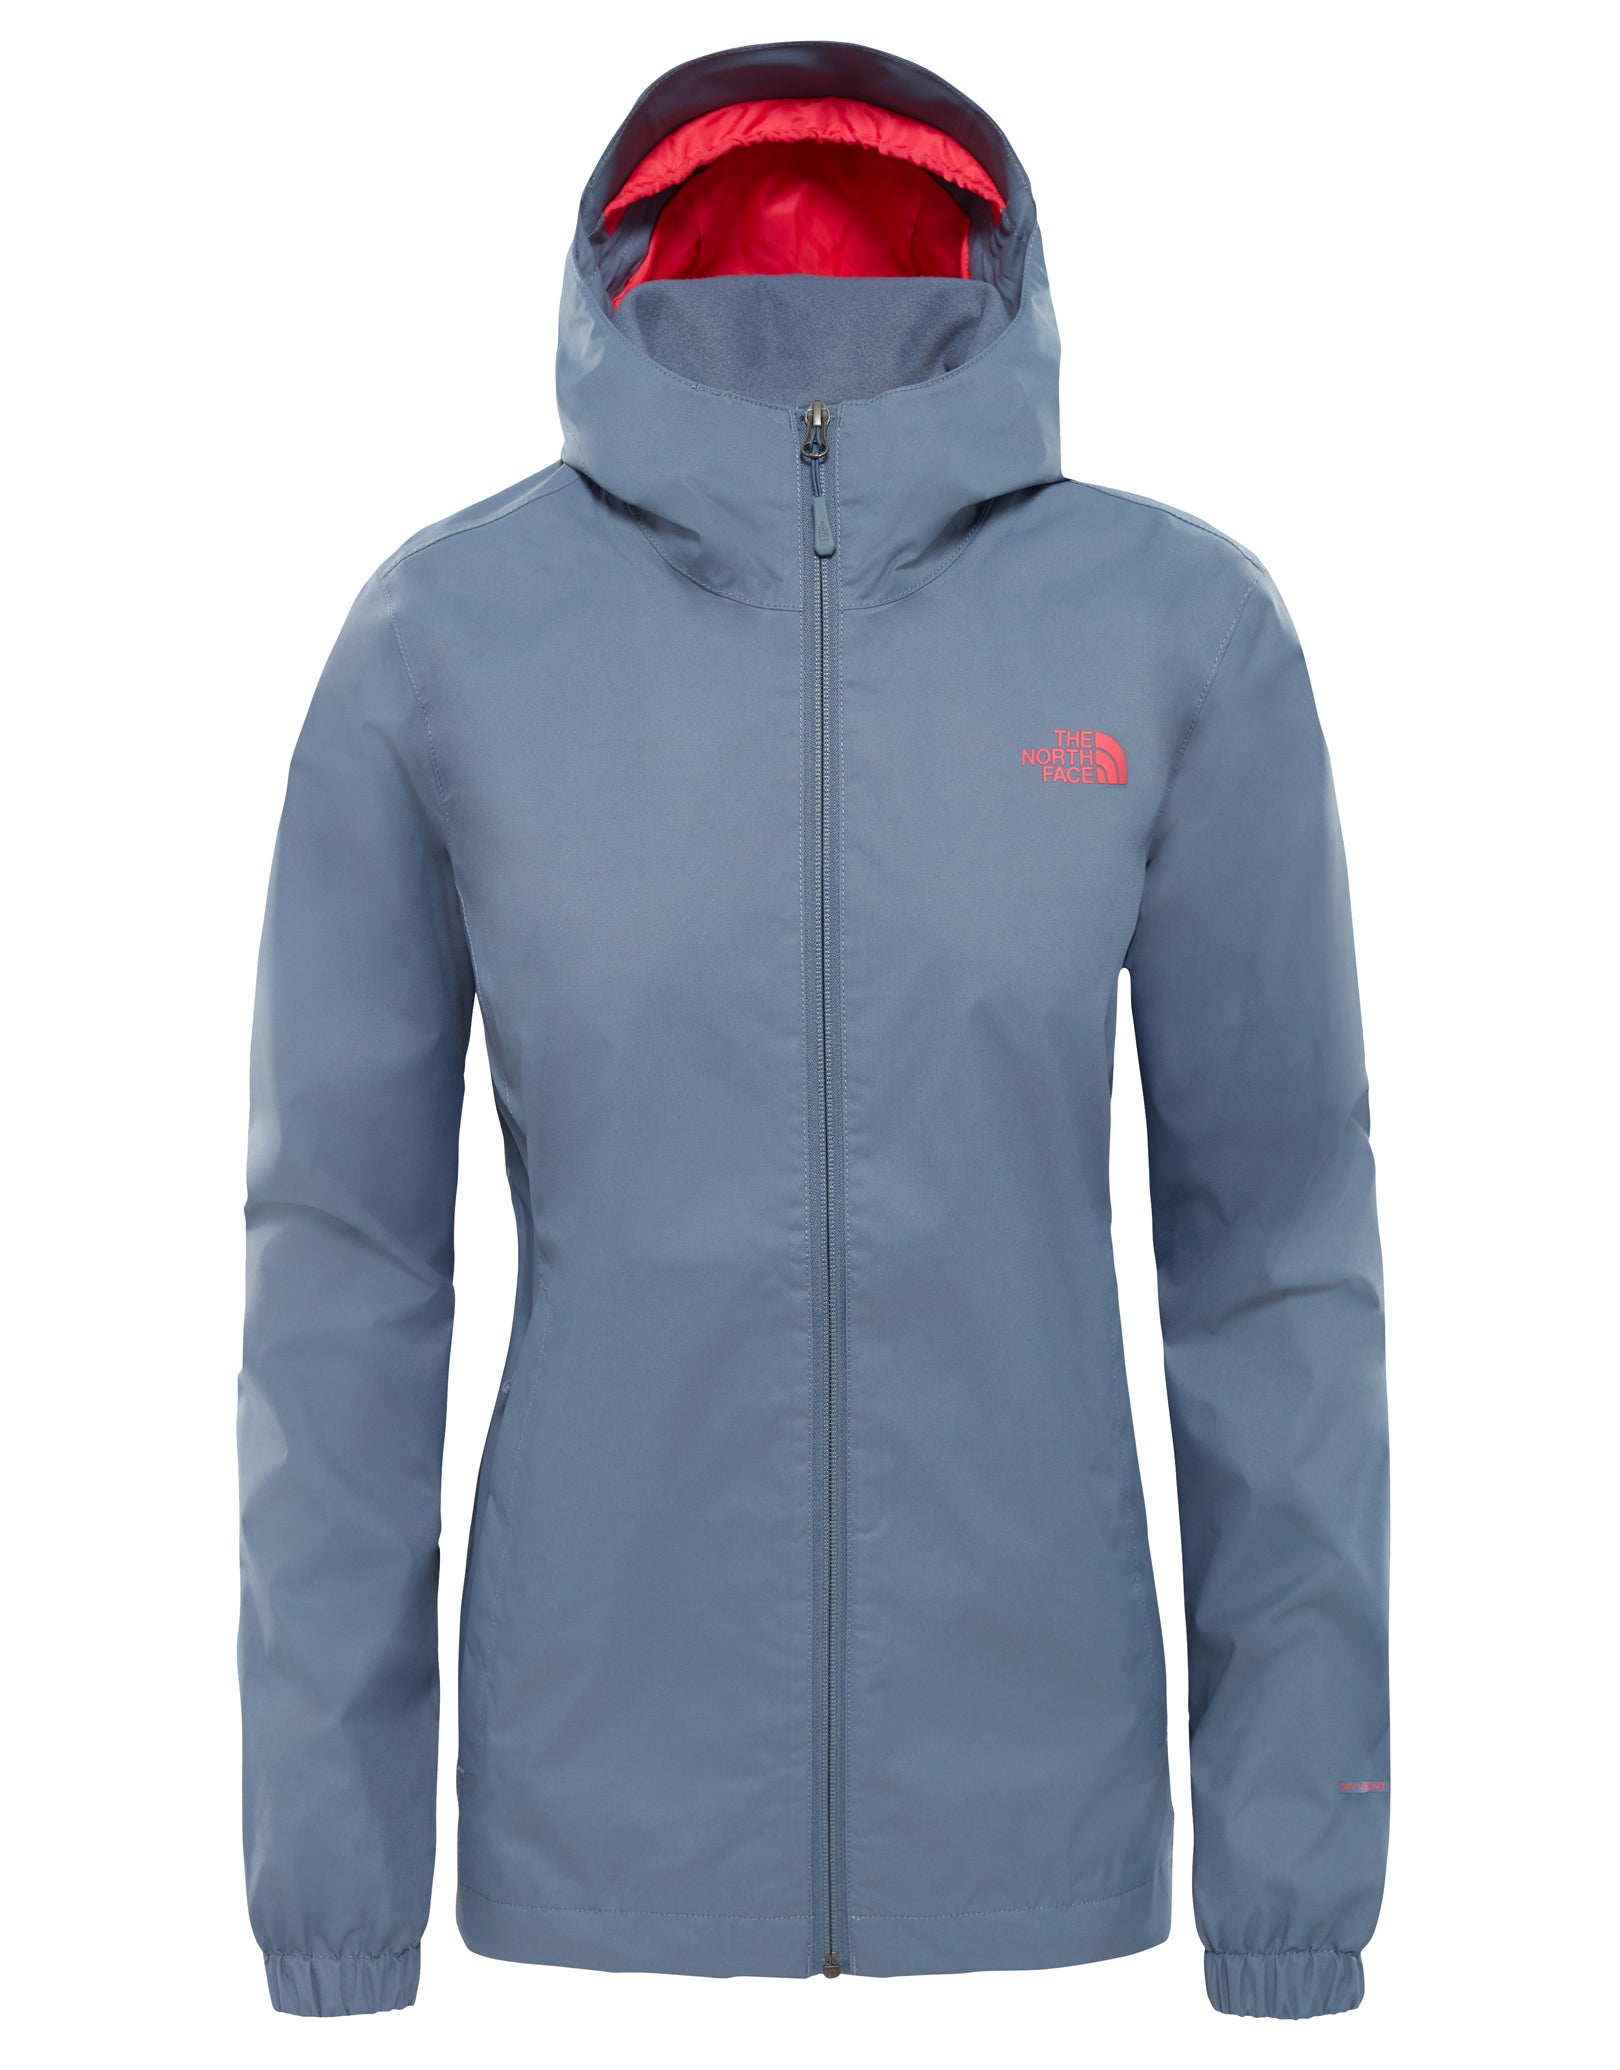 c4765ca9e885 The North Face Womens Quest Jacket - Grisaille Grey